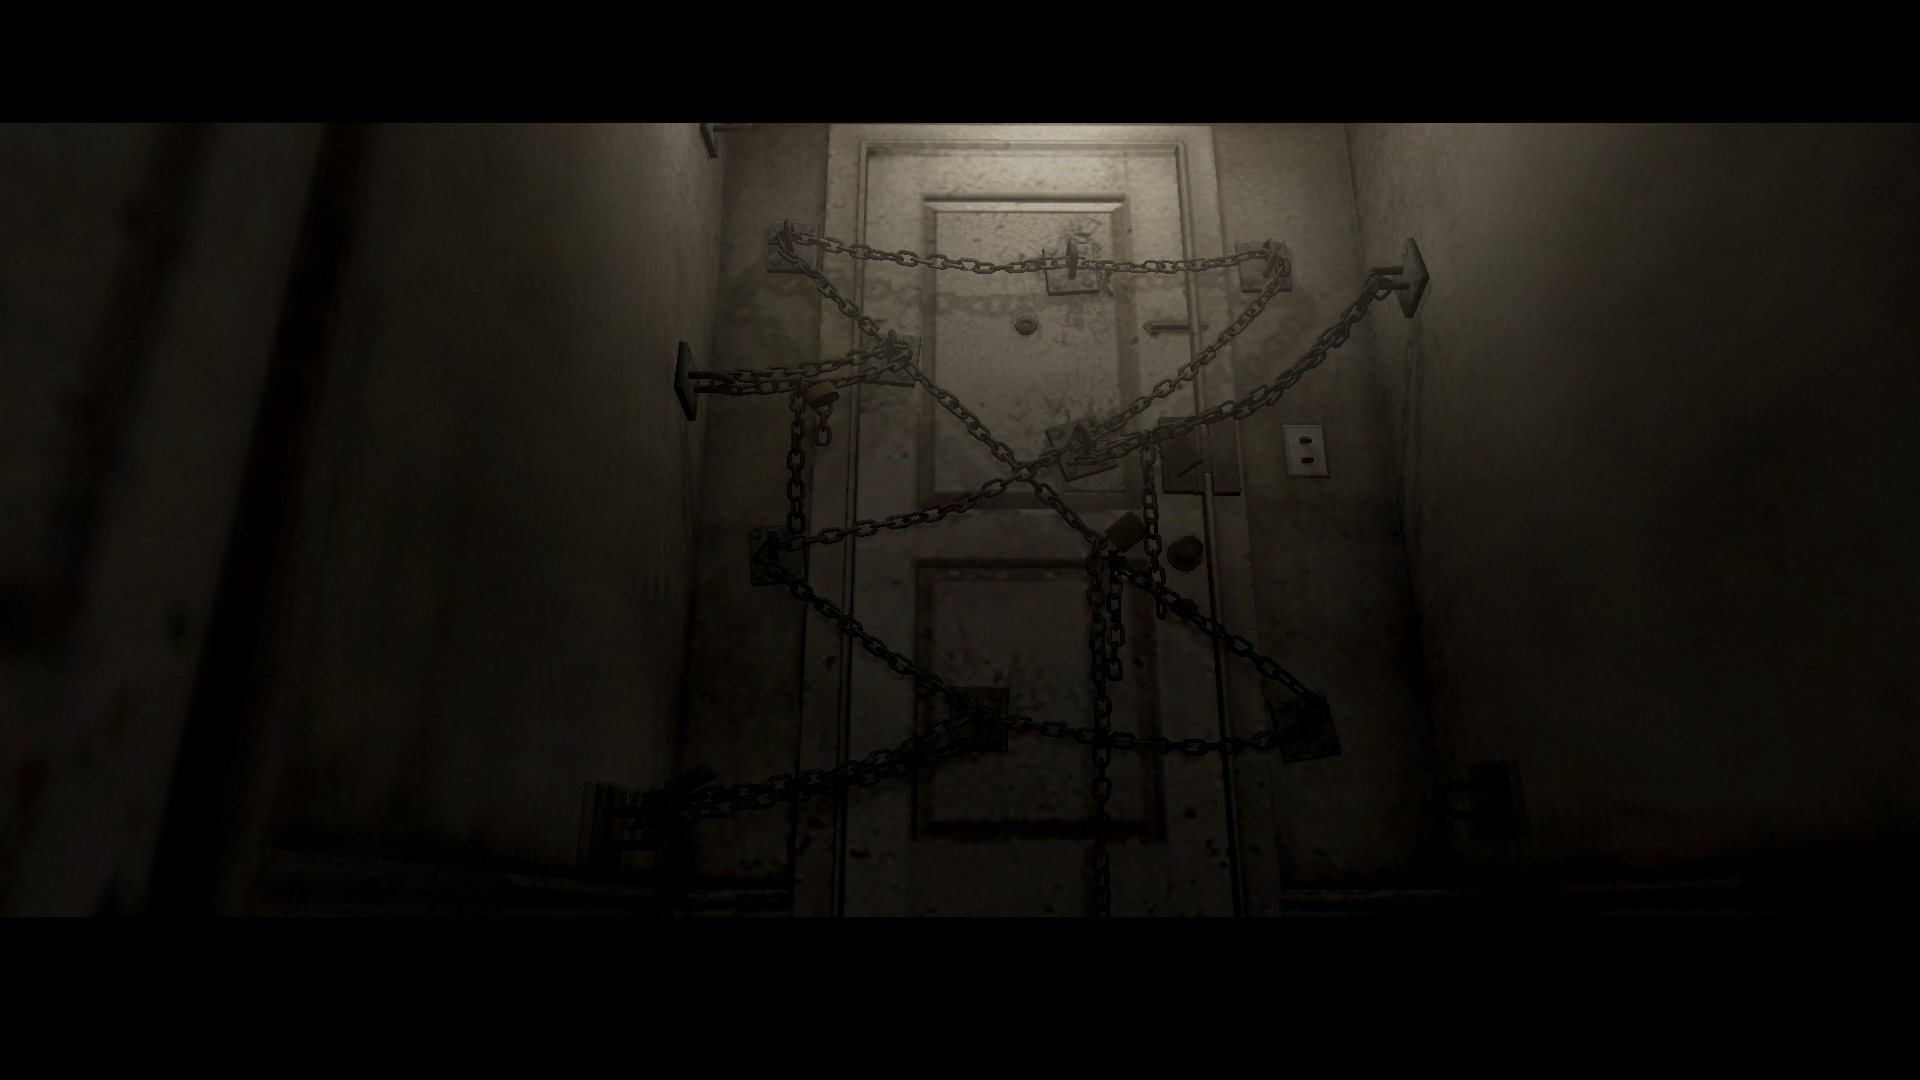 http://fc01.deviantart.net/fs70/f/2012/169/a/2/silent_hill_4_the_room_random_sh4_hd_screenshot_2_by_darkreign27-d5402u9.png